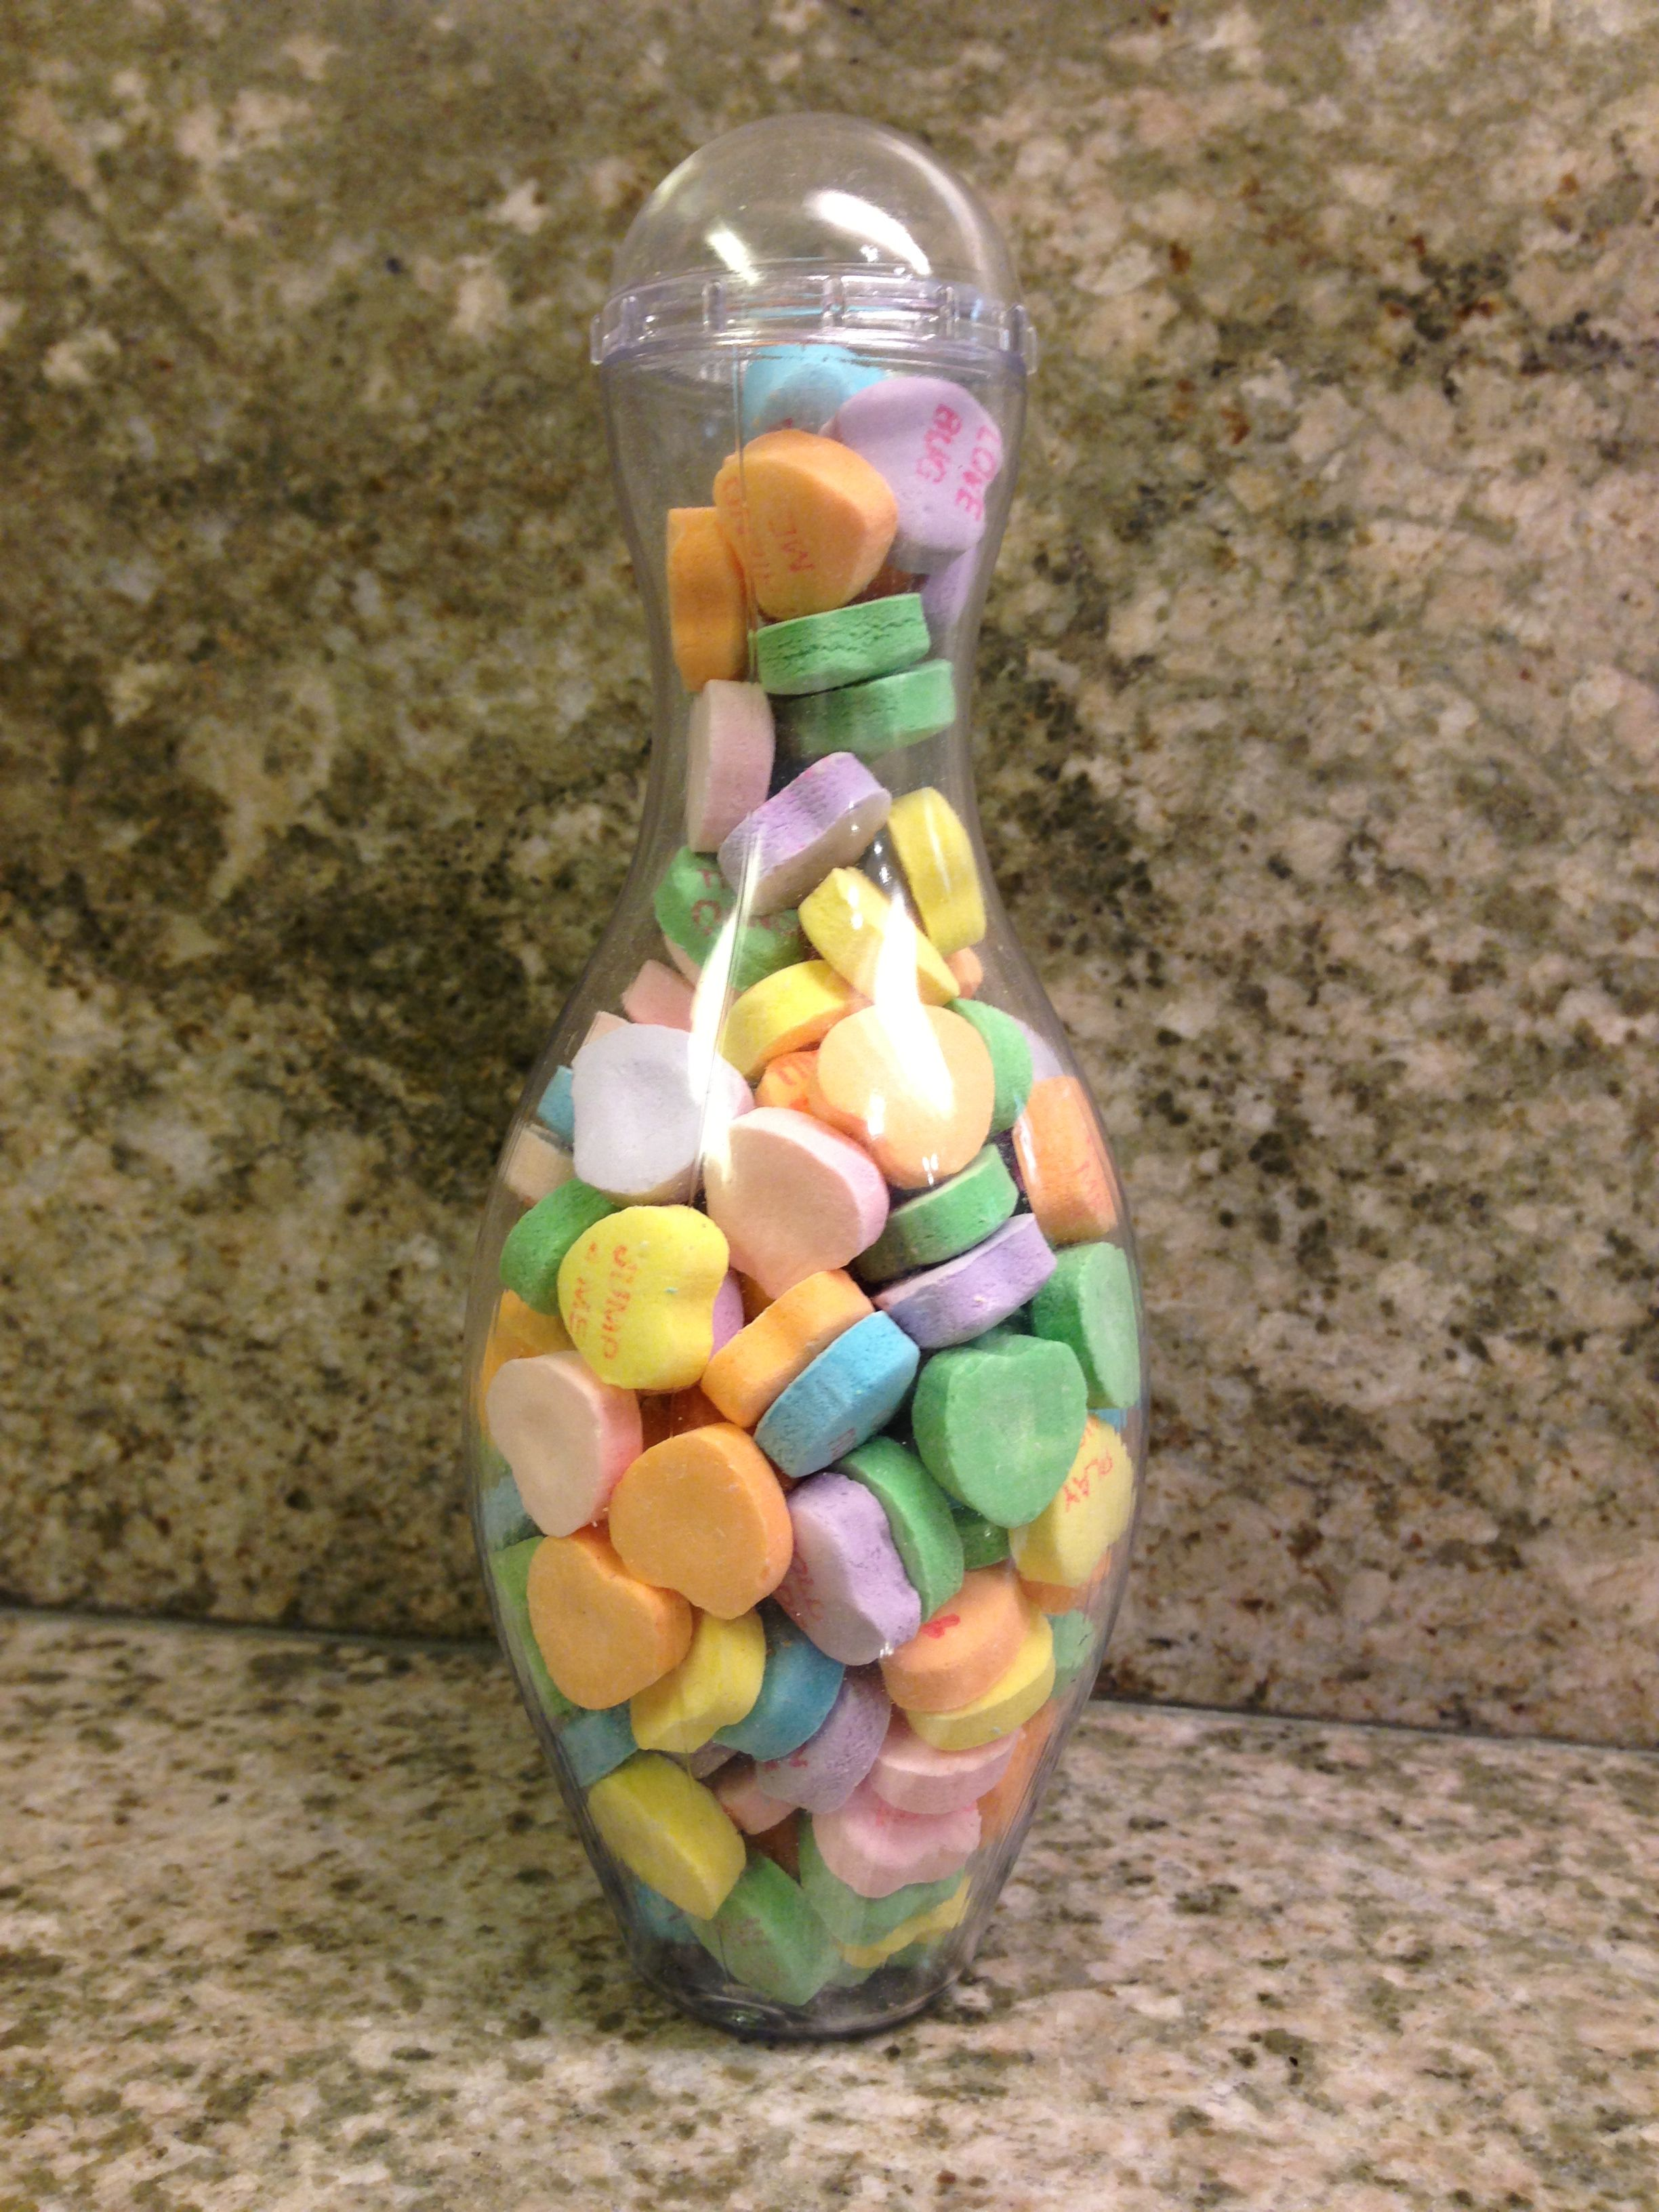 Mini Bowling Pin filled with conversation hearts. So many great ways to use our mini bowling pin containers! Great for Valentine's Day!